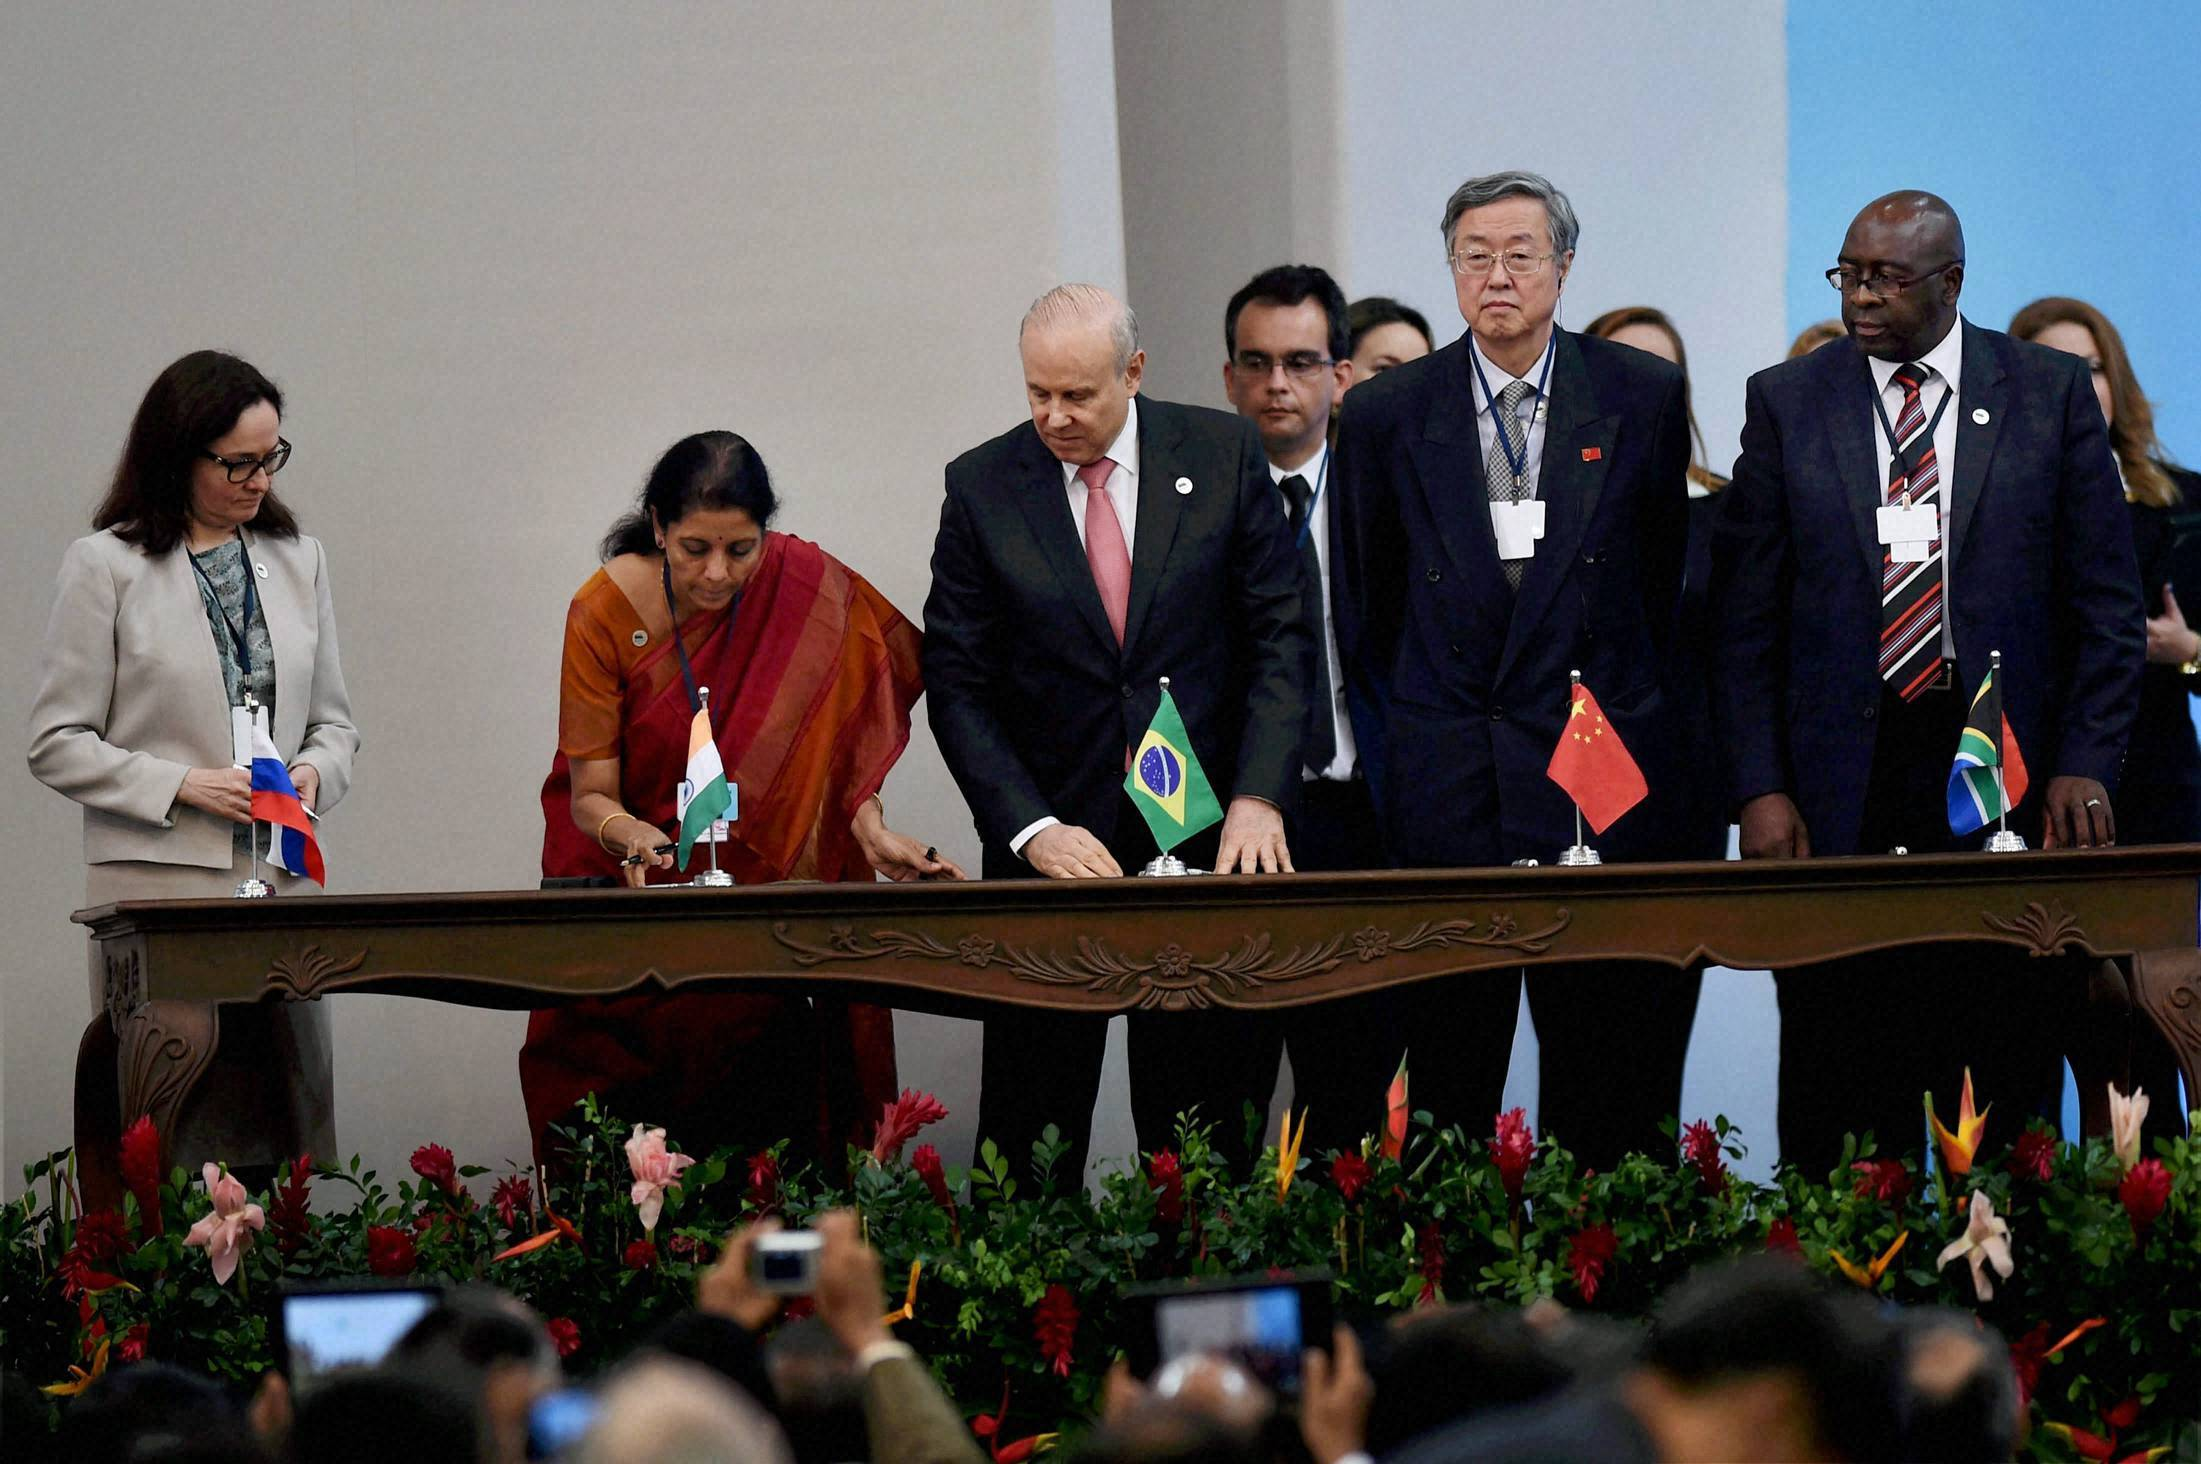 Minister of State, Finance, Corporate, Affairs Nirmala Sitharaman, signing, agreement, creation, development,  bank, 6th BRICS summit, Fortaleza, Brazil